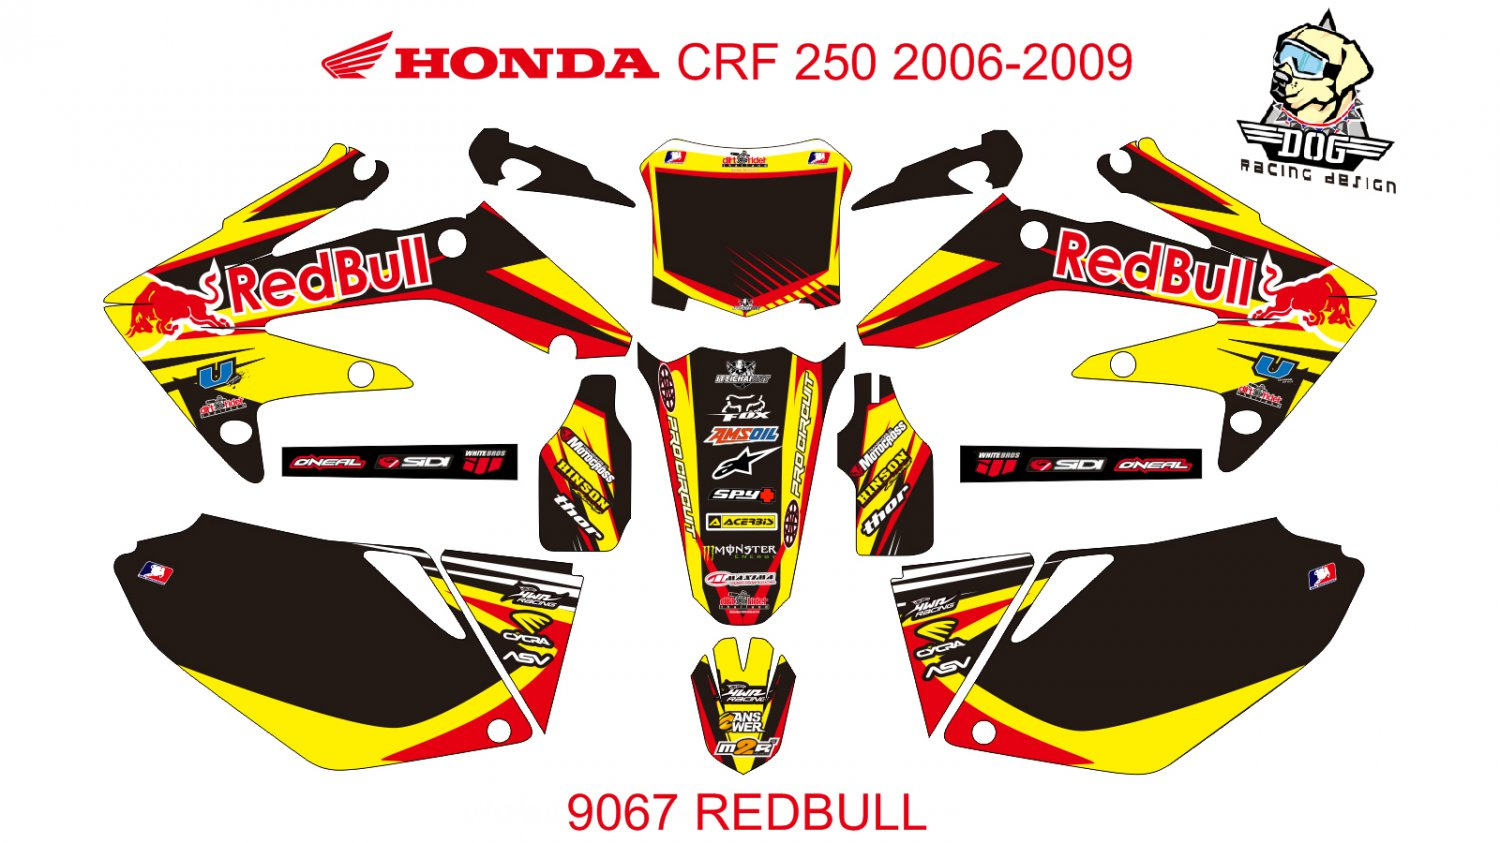 HONDA CRF 250 2006-2009 GRAPHIC DECAL KIT CODE.9067